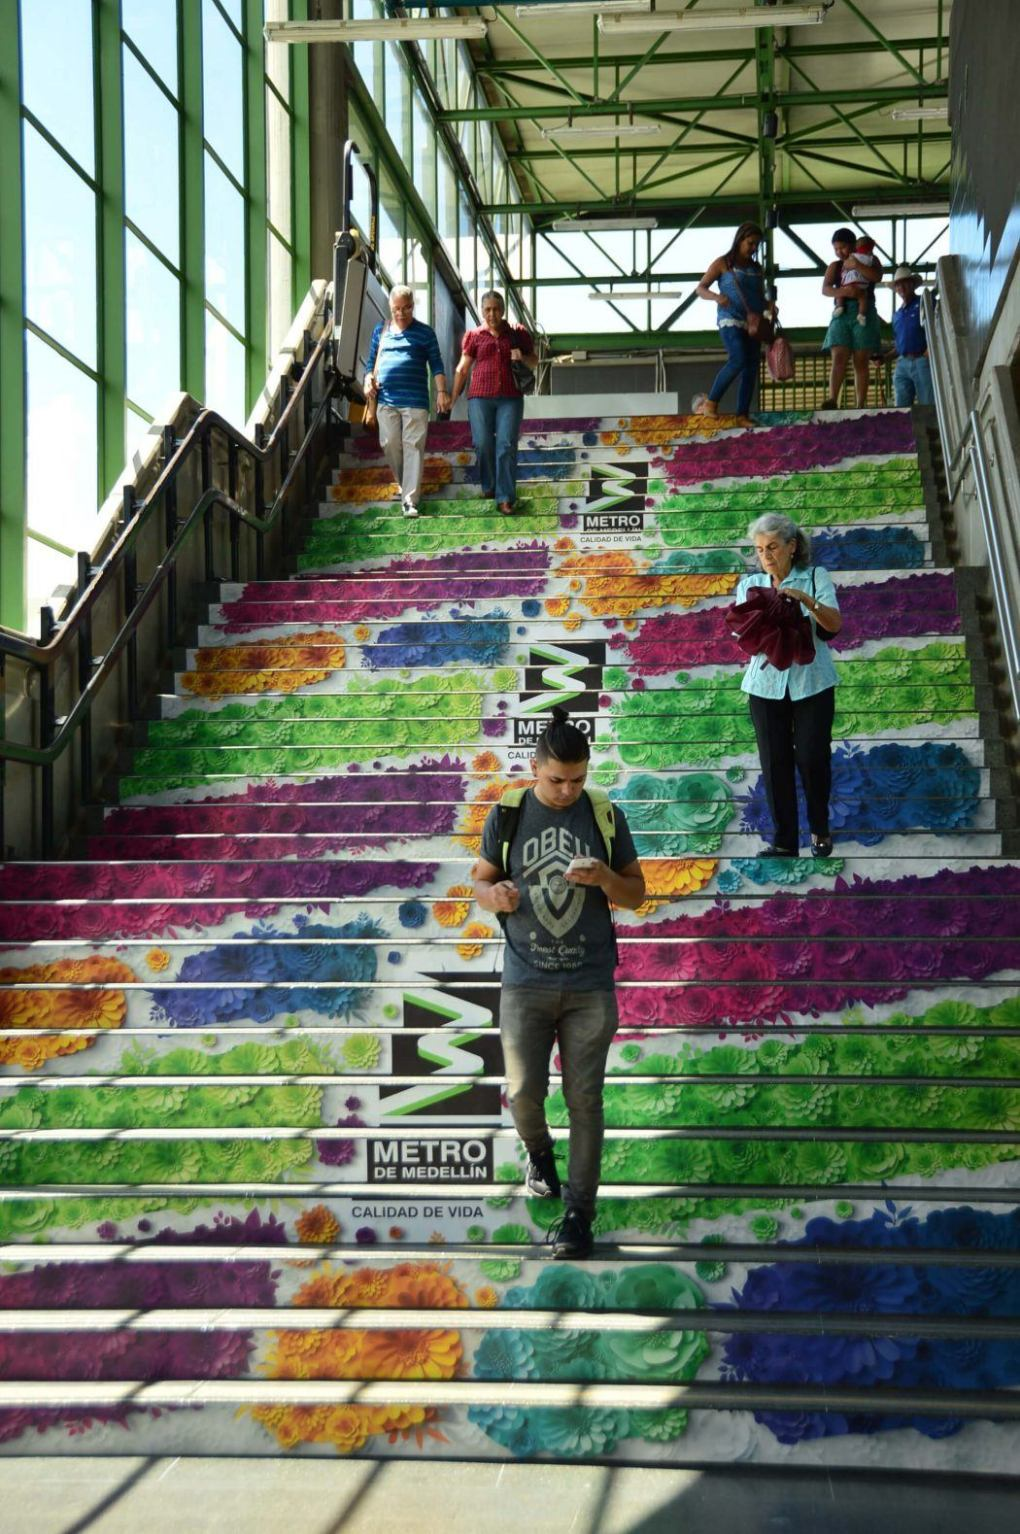 steps of medellin metro decorate with floral images